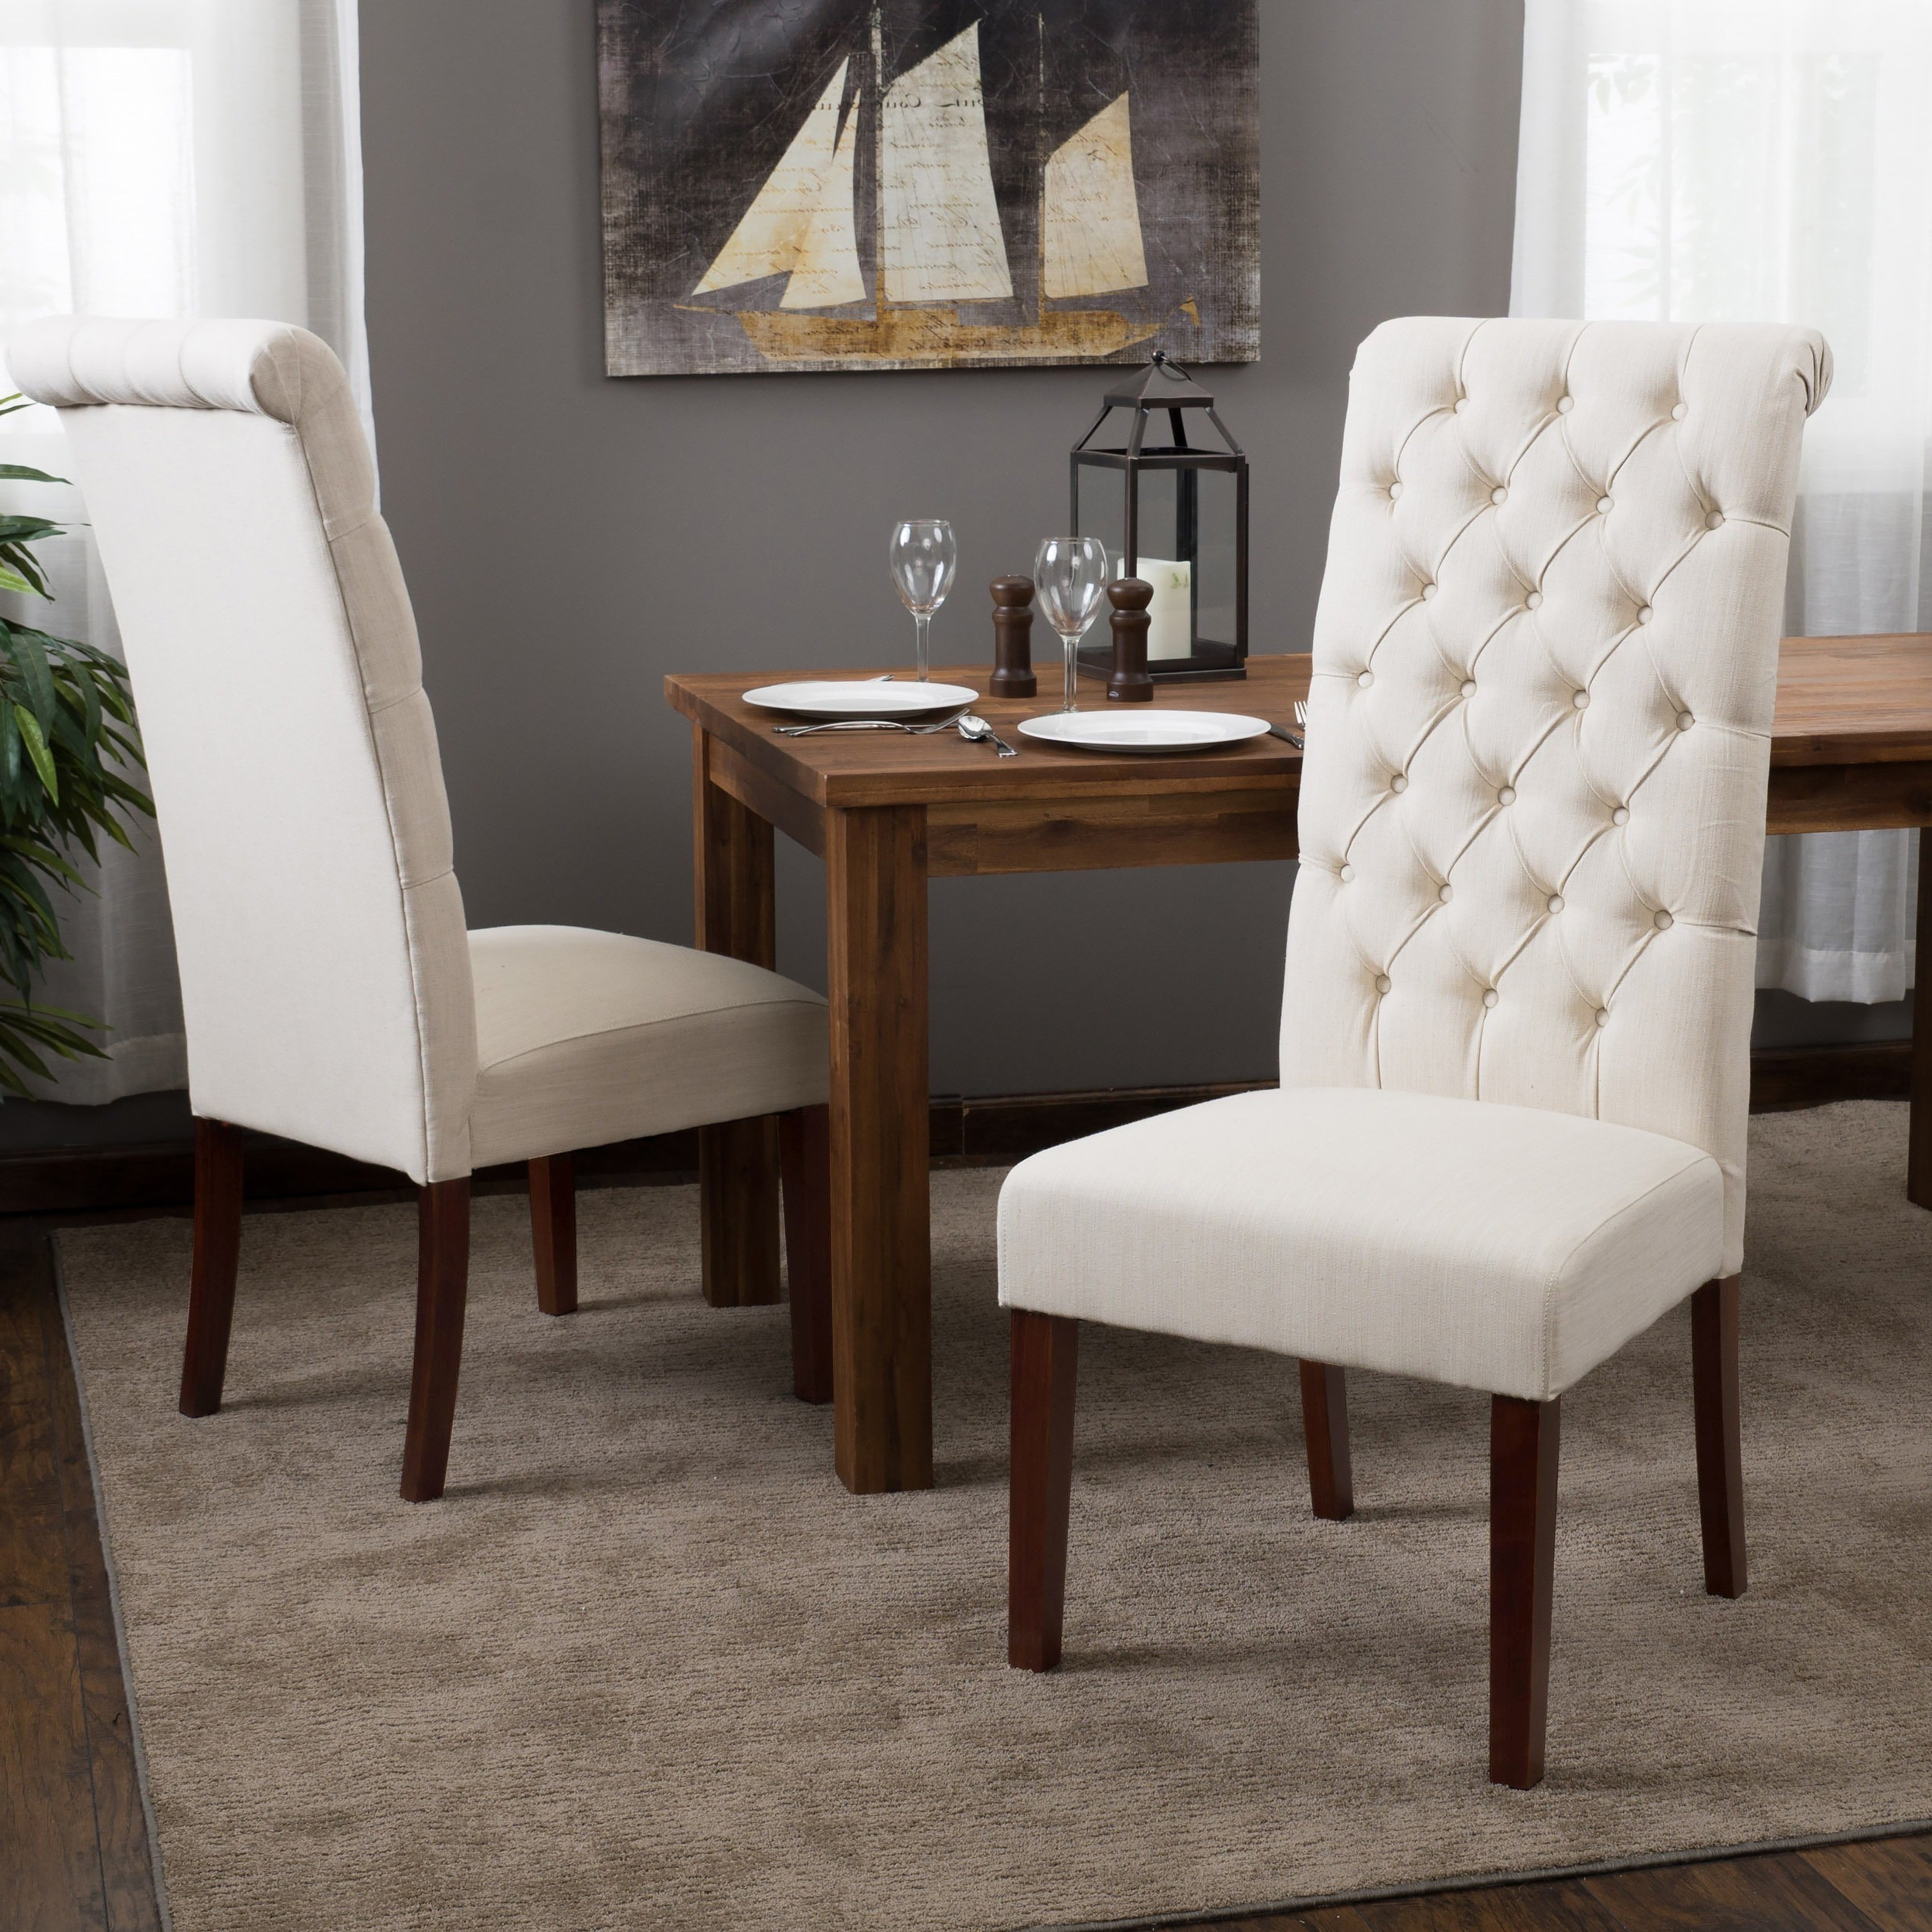 Favorite Caira 7 Piece Rectangular Dining Sets With Diamond Back Side Chairs Inside Shop Tall Natural Tufted Fabric Dining Chair (Set Of 2) (View 10 of 25)